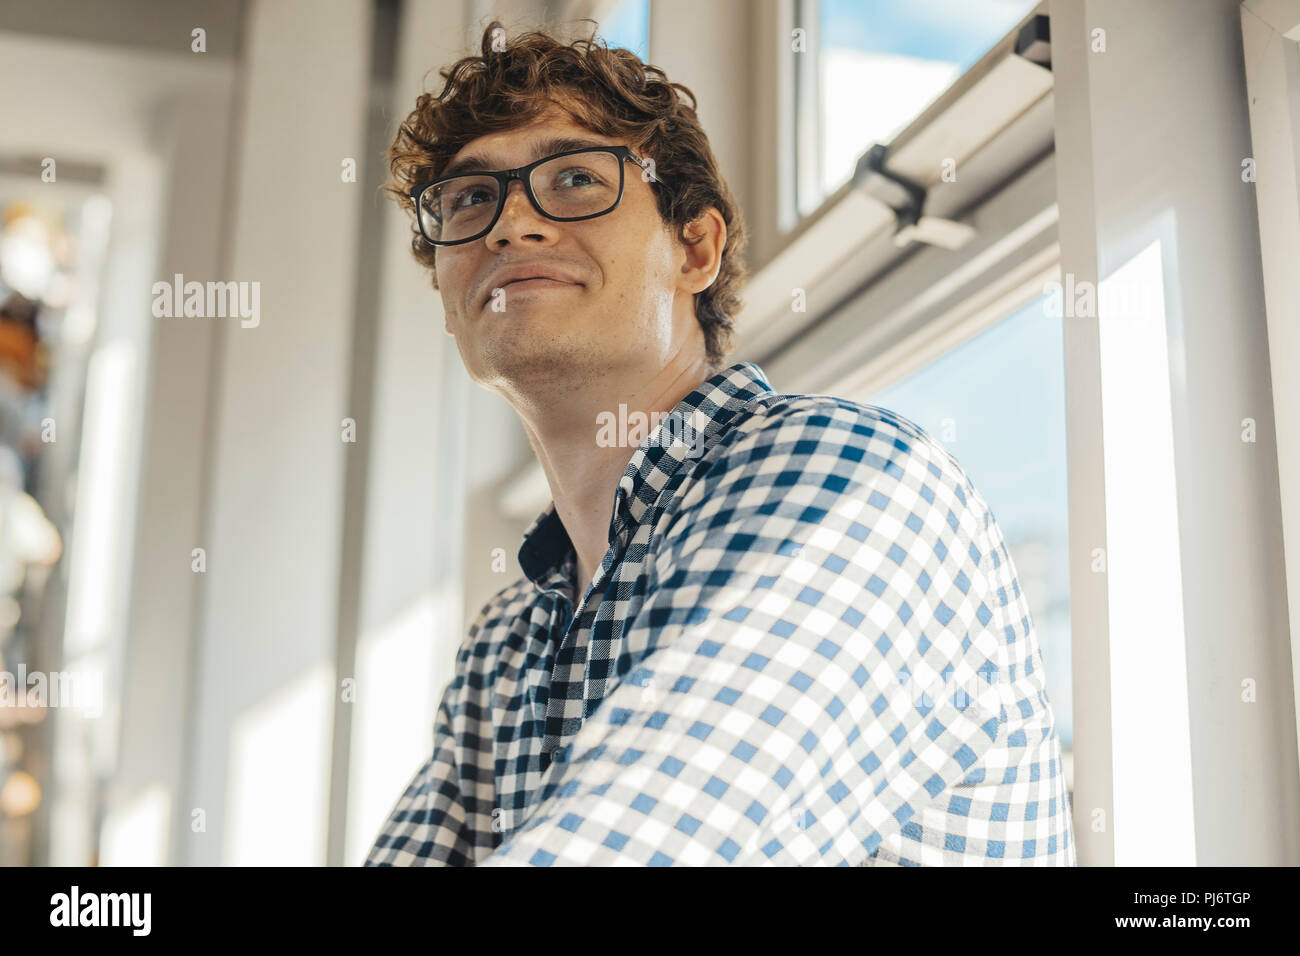 Close up of young man sitting next to big windows at metro station. - Stock Image